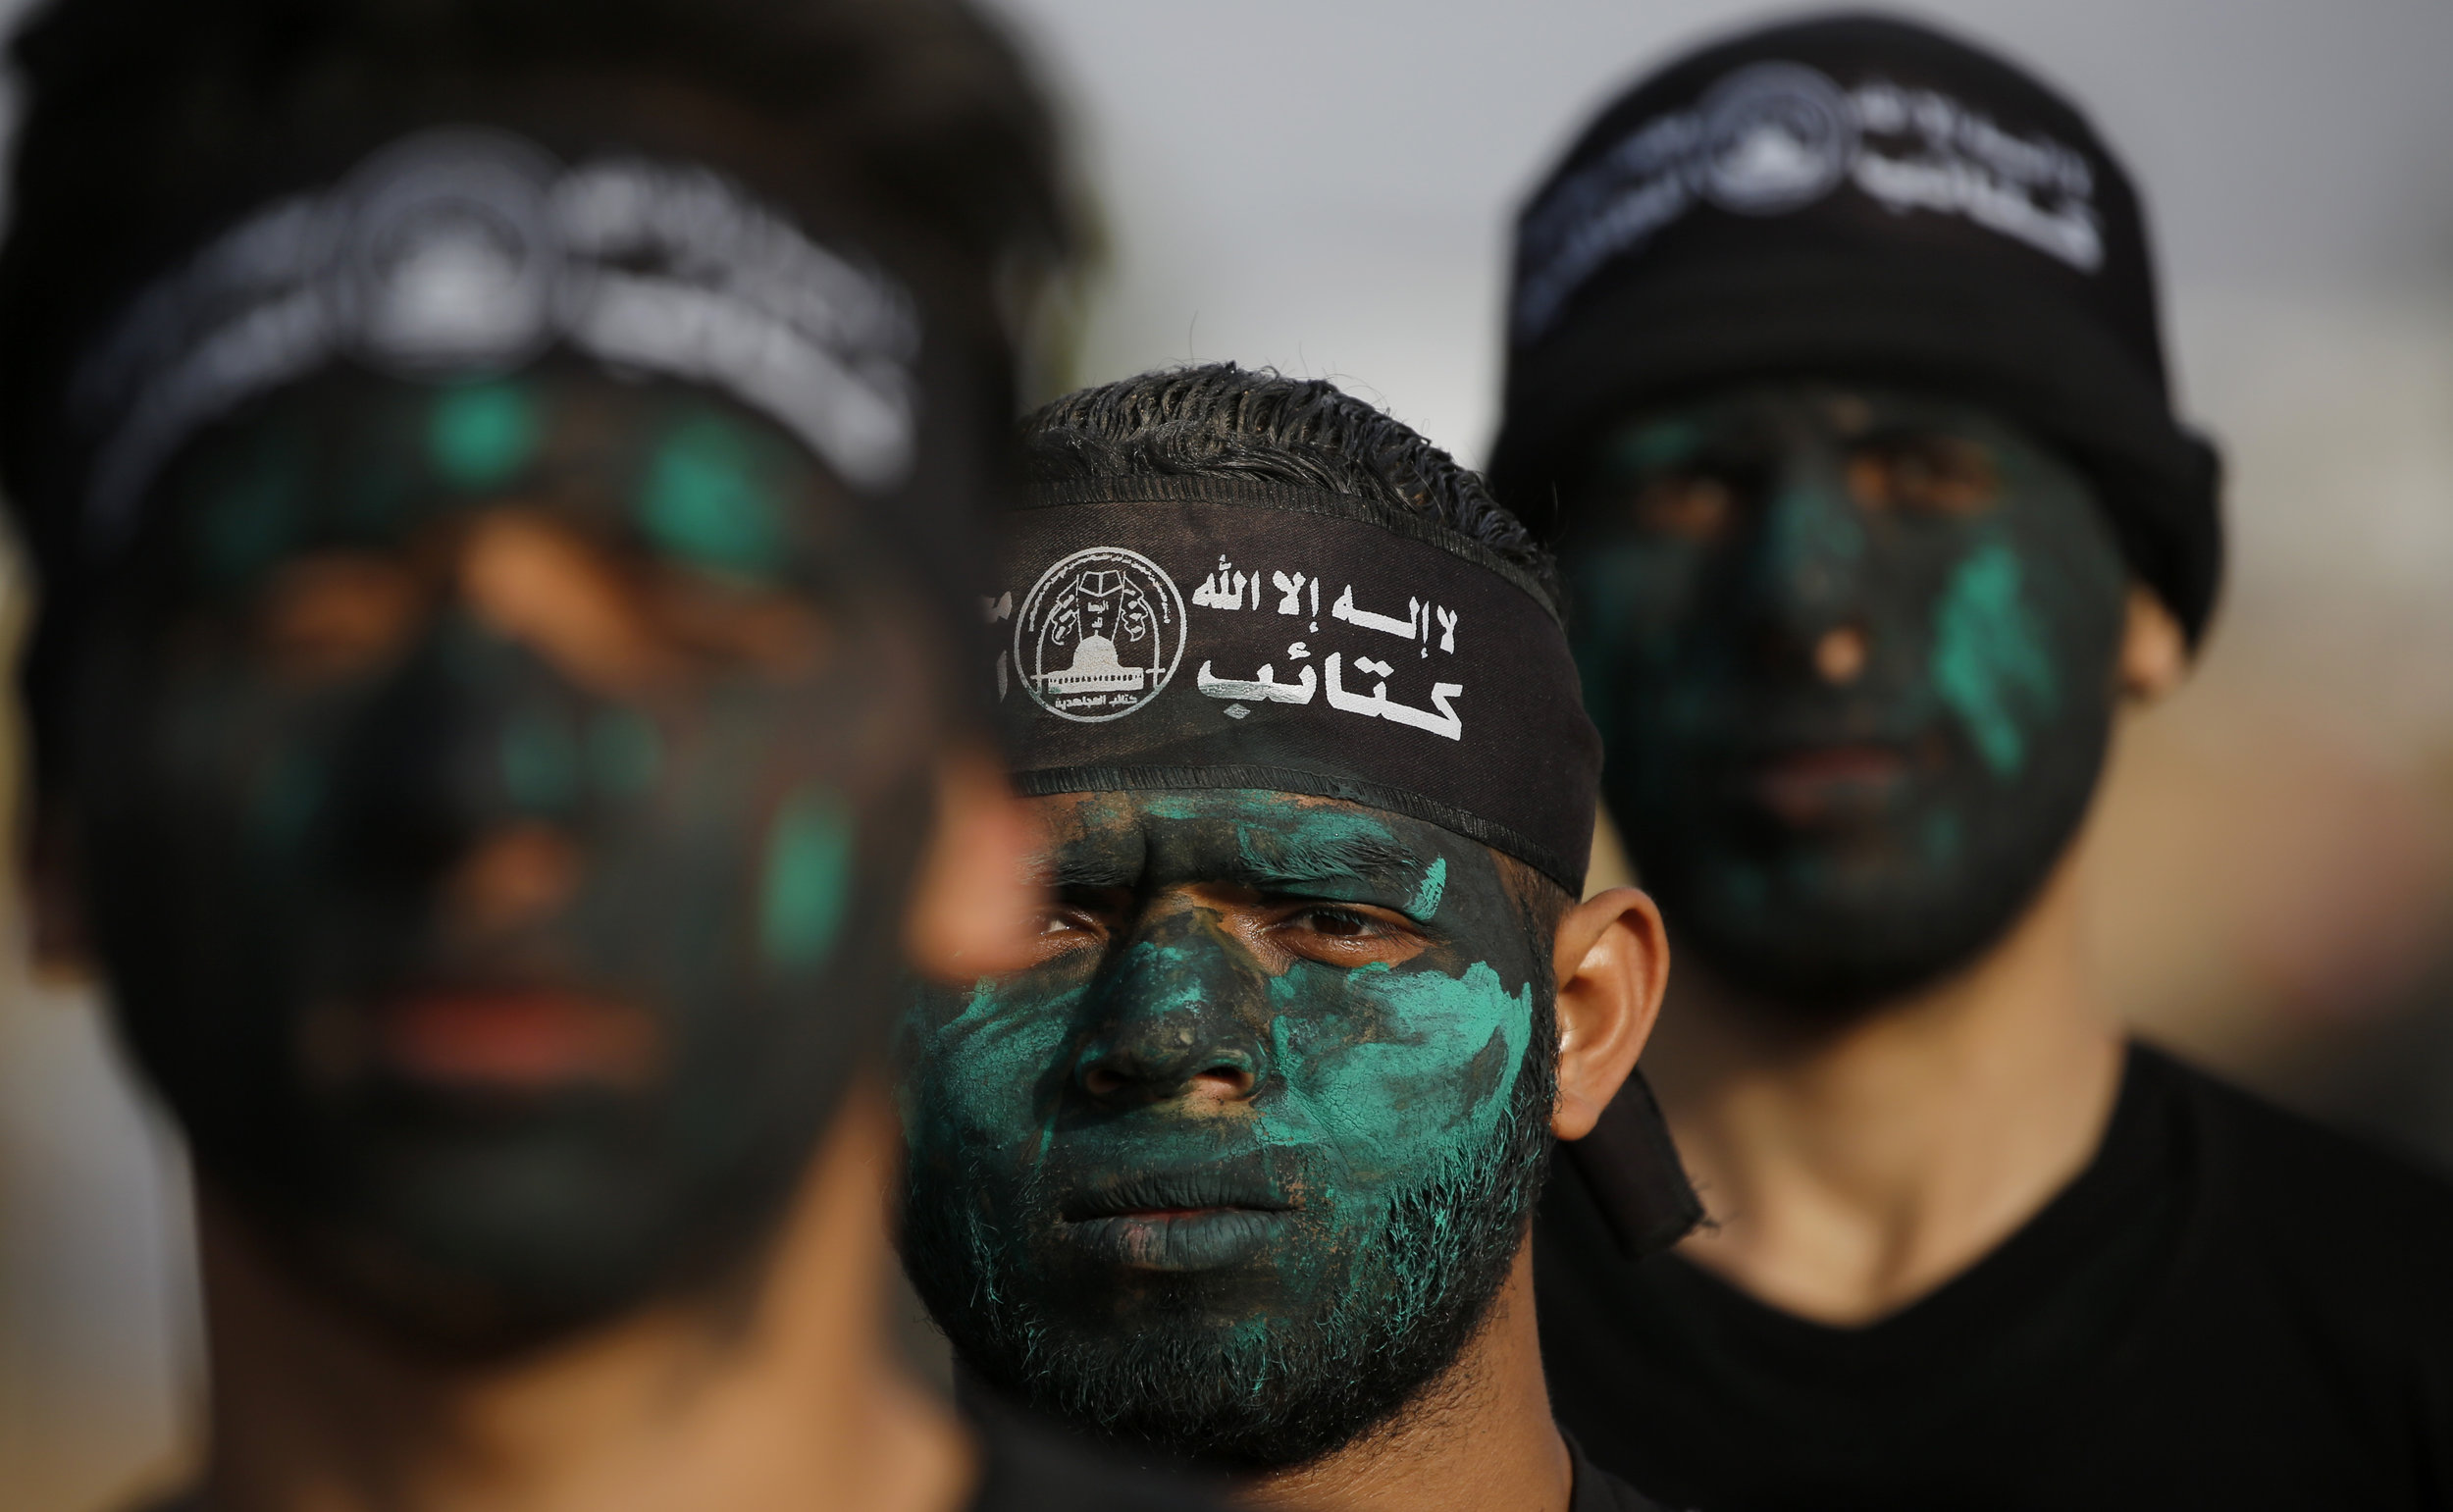 Palestinian militants from Mujahideen Brigades, a small military group in Gaza, participate in a training session in Gaza City, Wednesday, April 24, 2019. (AP Photo/Hatem Moussa)